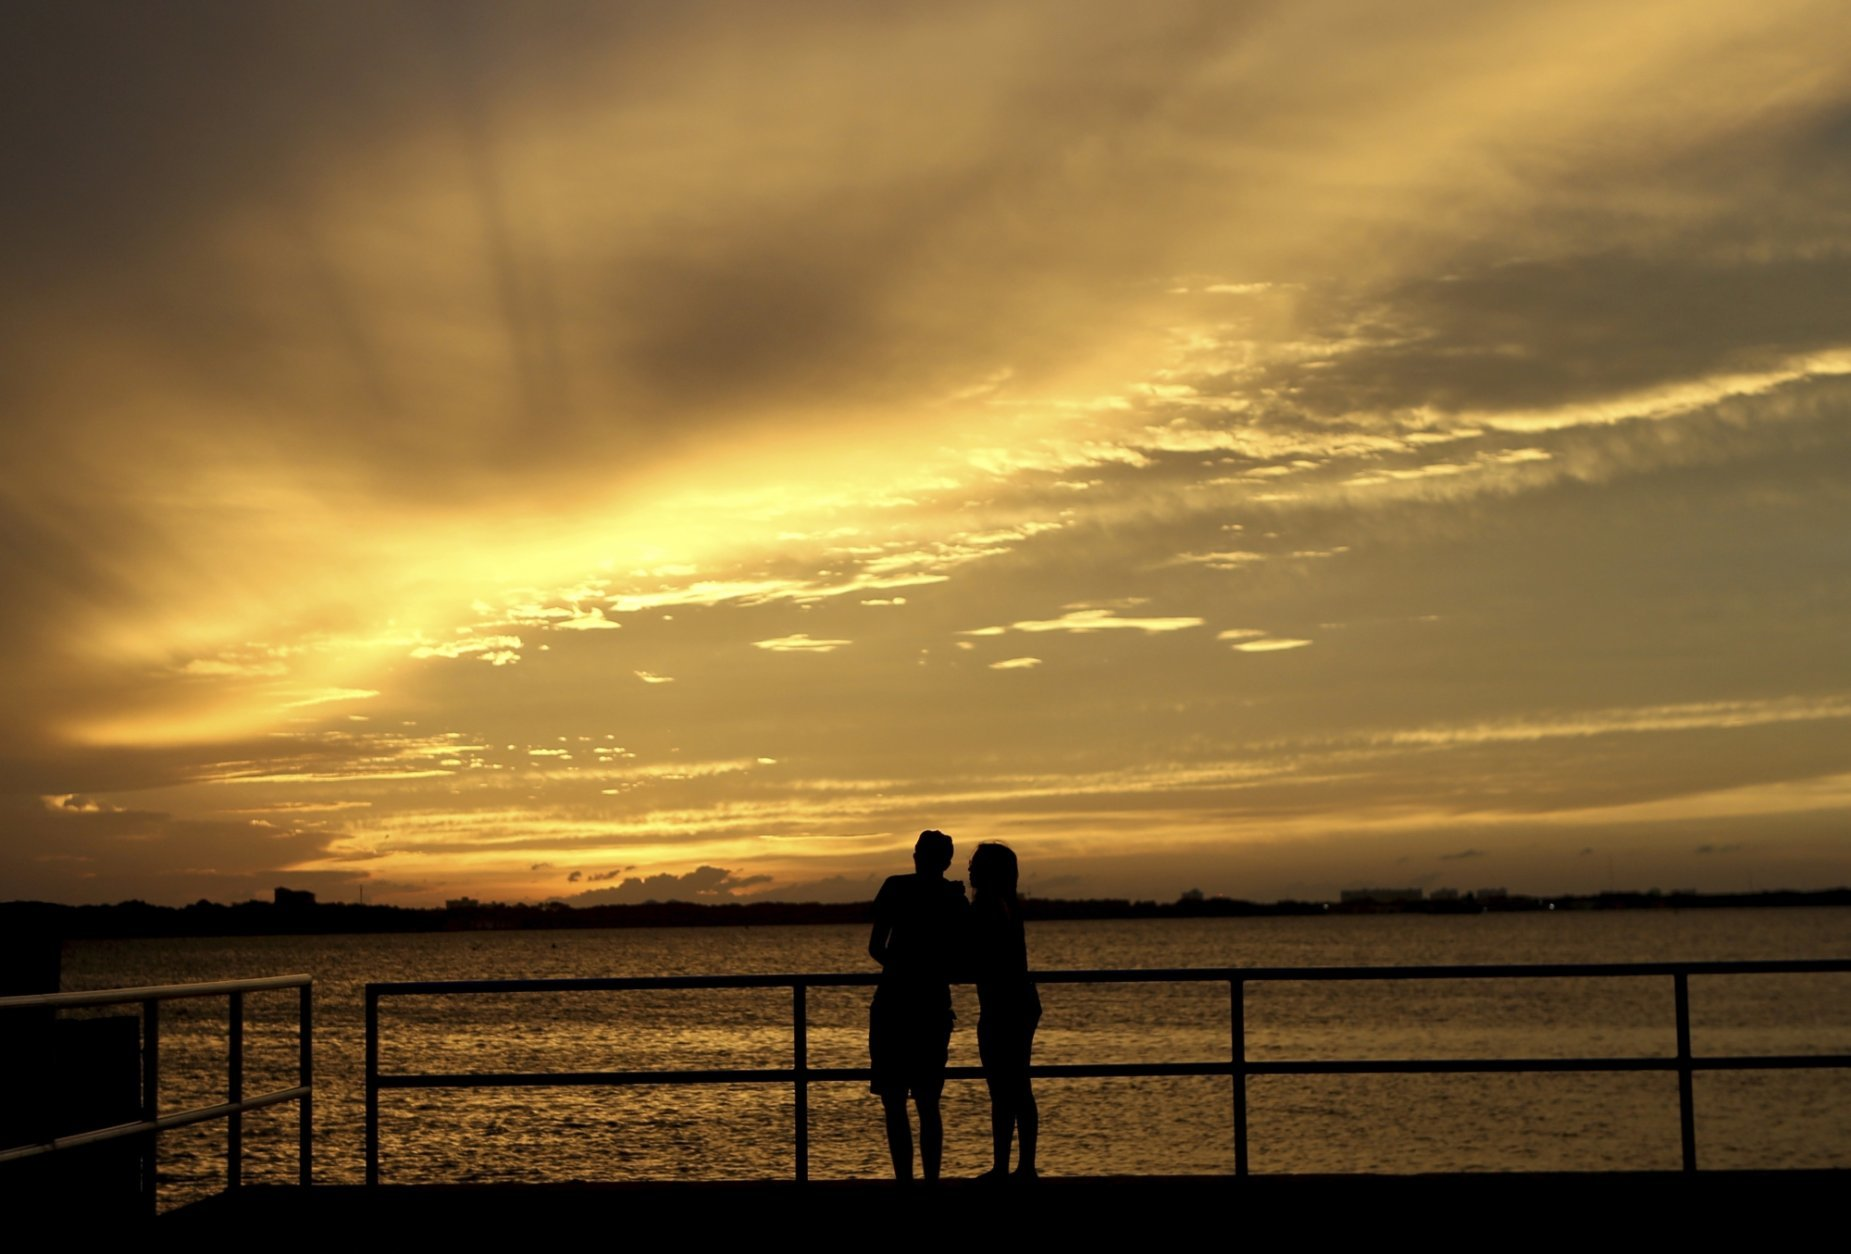 A couple is silhouetted against the sunset at the St. Andrews Marina in Panama City, Fla., Tuesday, Oct. 9, 2018, ahead of Hurricane Michael. (Patti Blake/News Herald via AP)